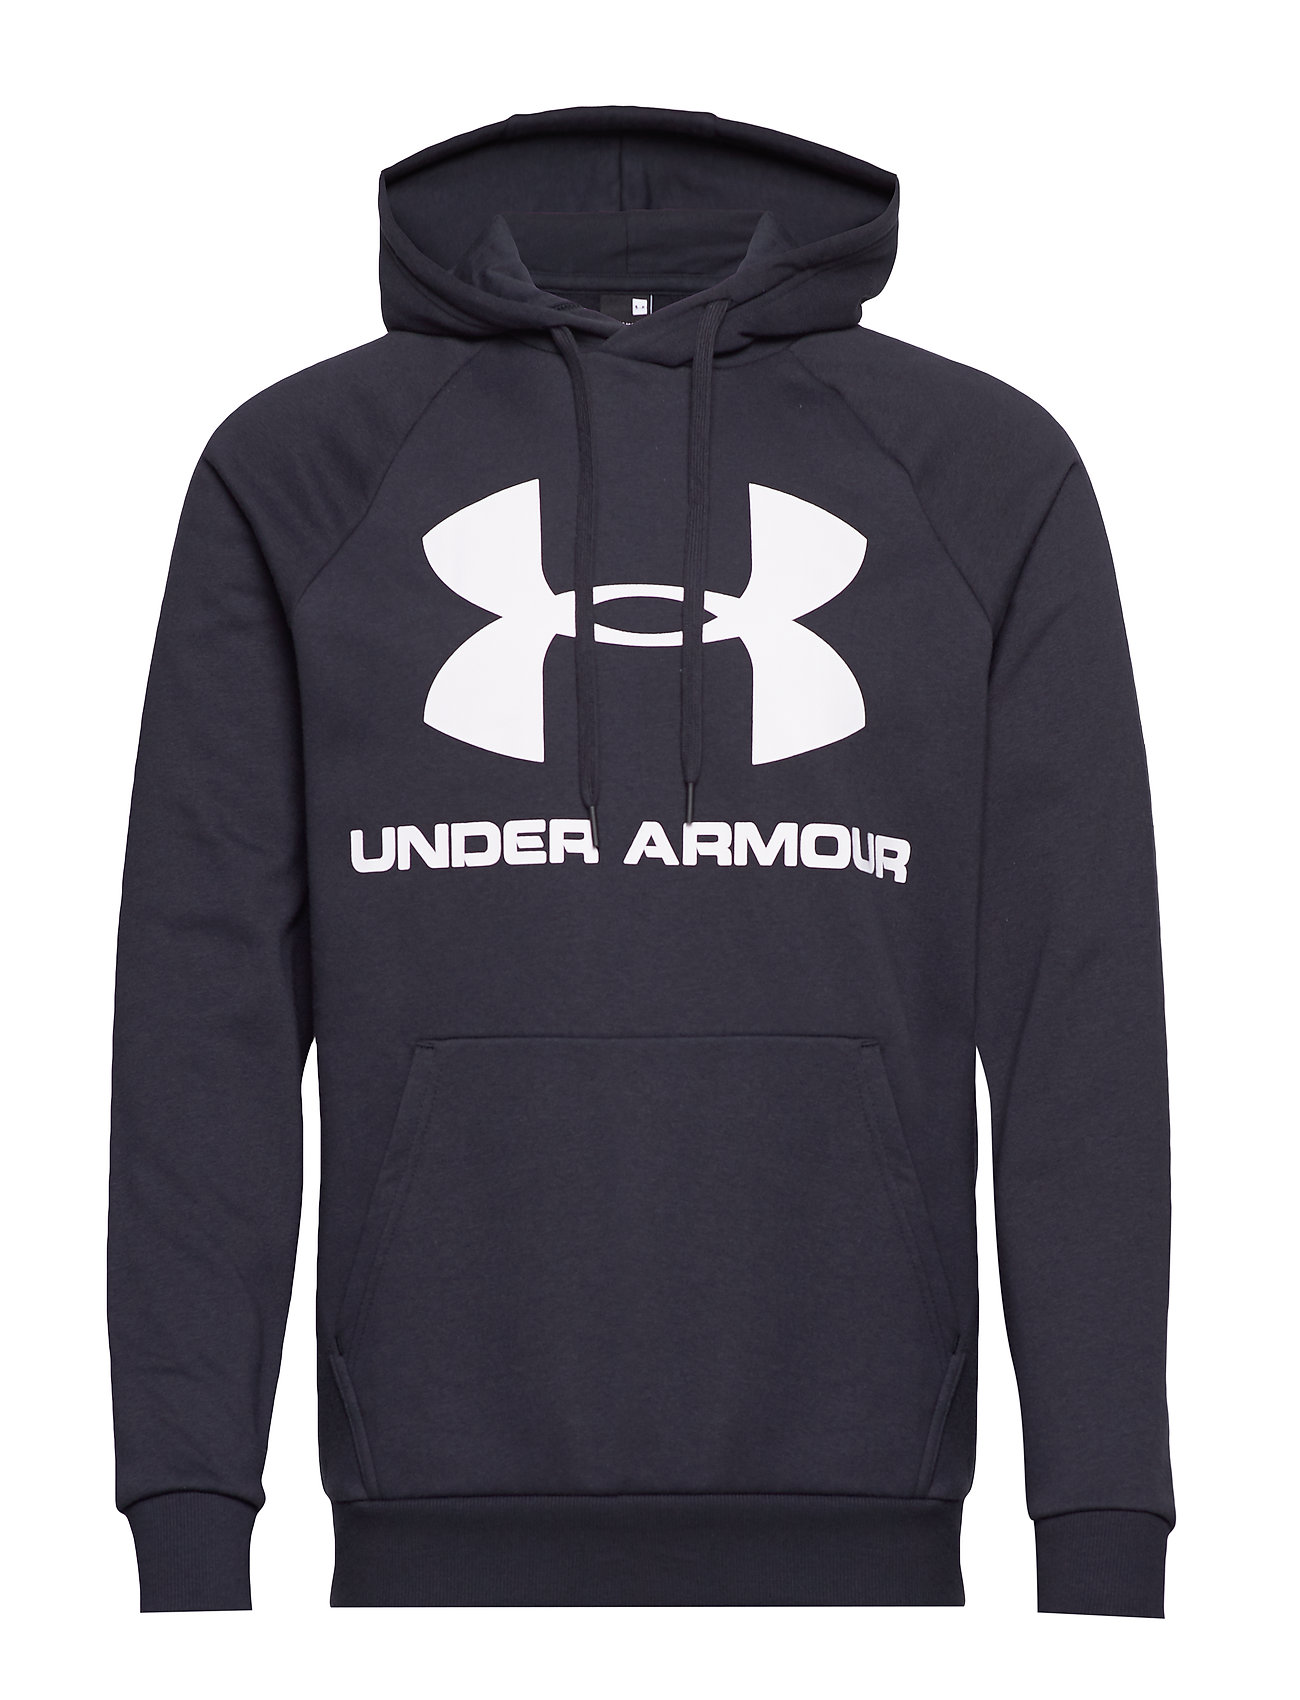 Under Armour RIVAL FLEECE SPORTSTYLE LOGO HOODIE - BLACK